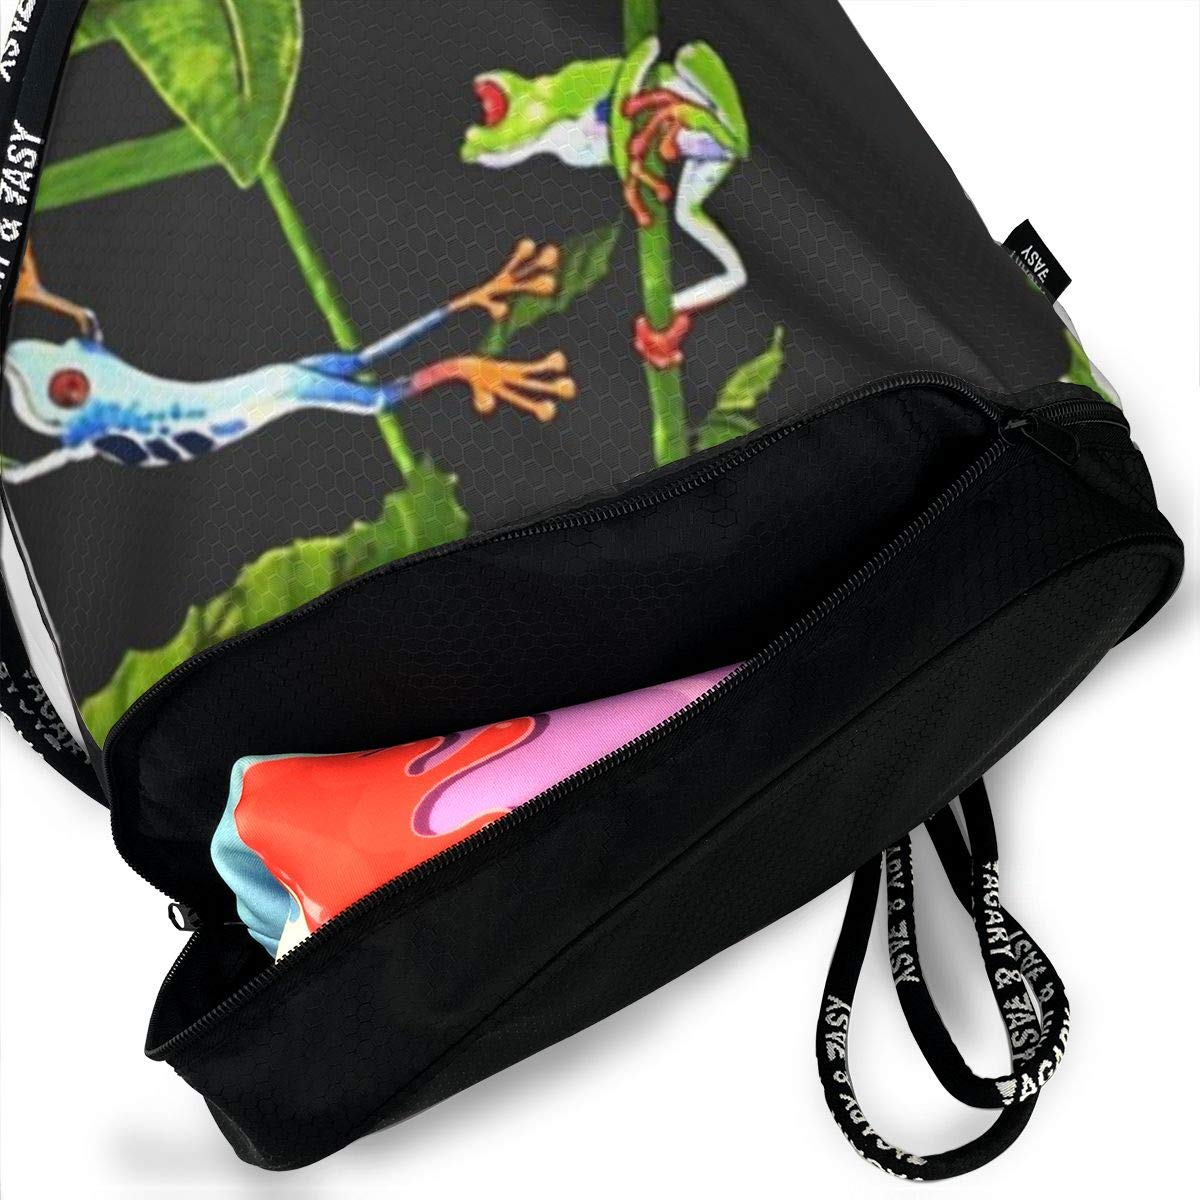 Frog World Cinch Backpack Sackpack Tote Sack Lightweight Waterproof Large Storage Drawstring Bag For Men /& Women